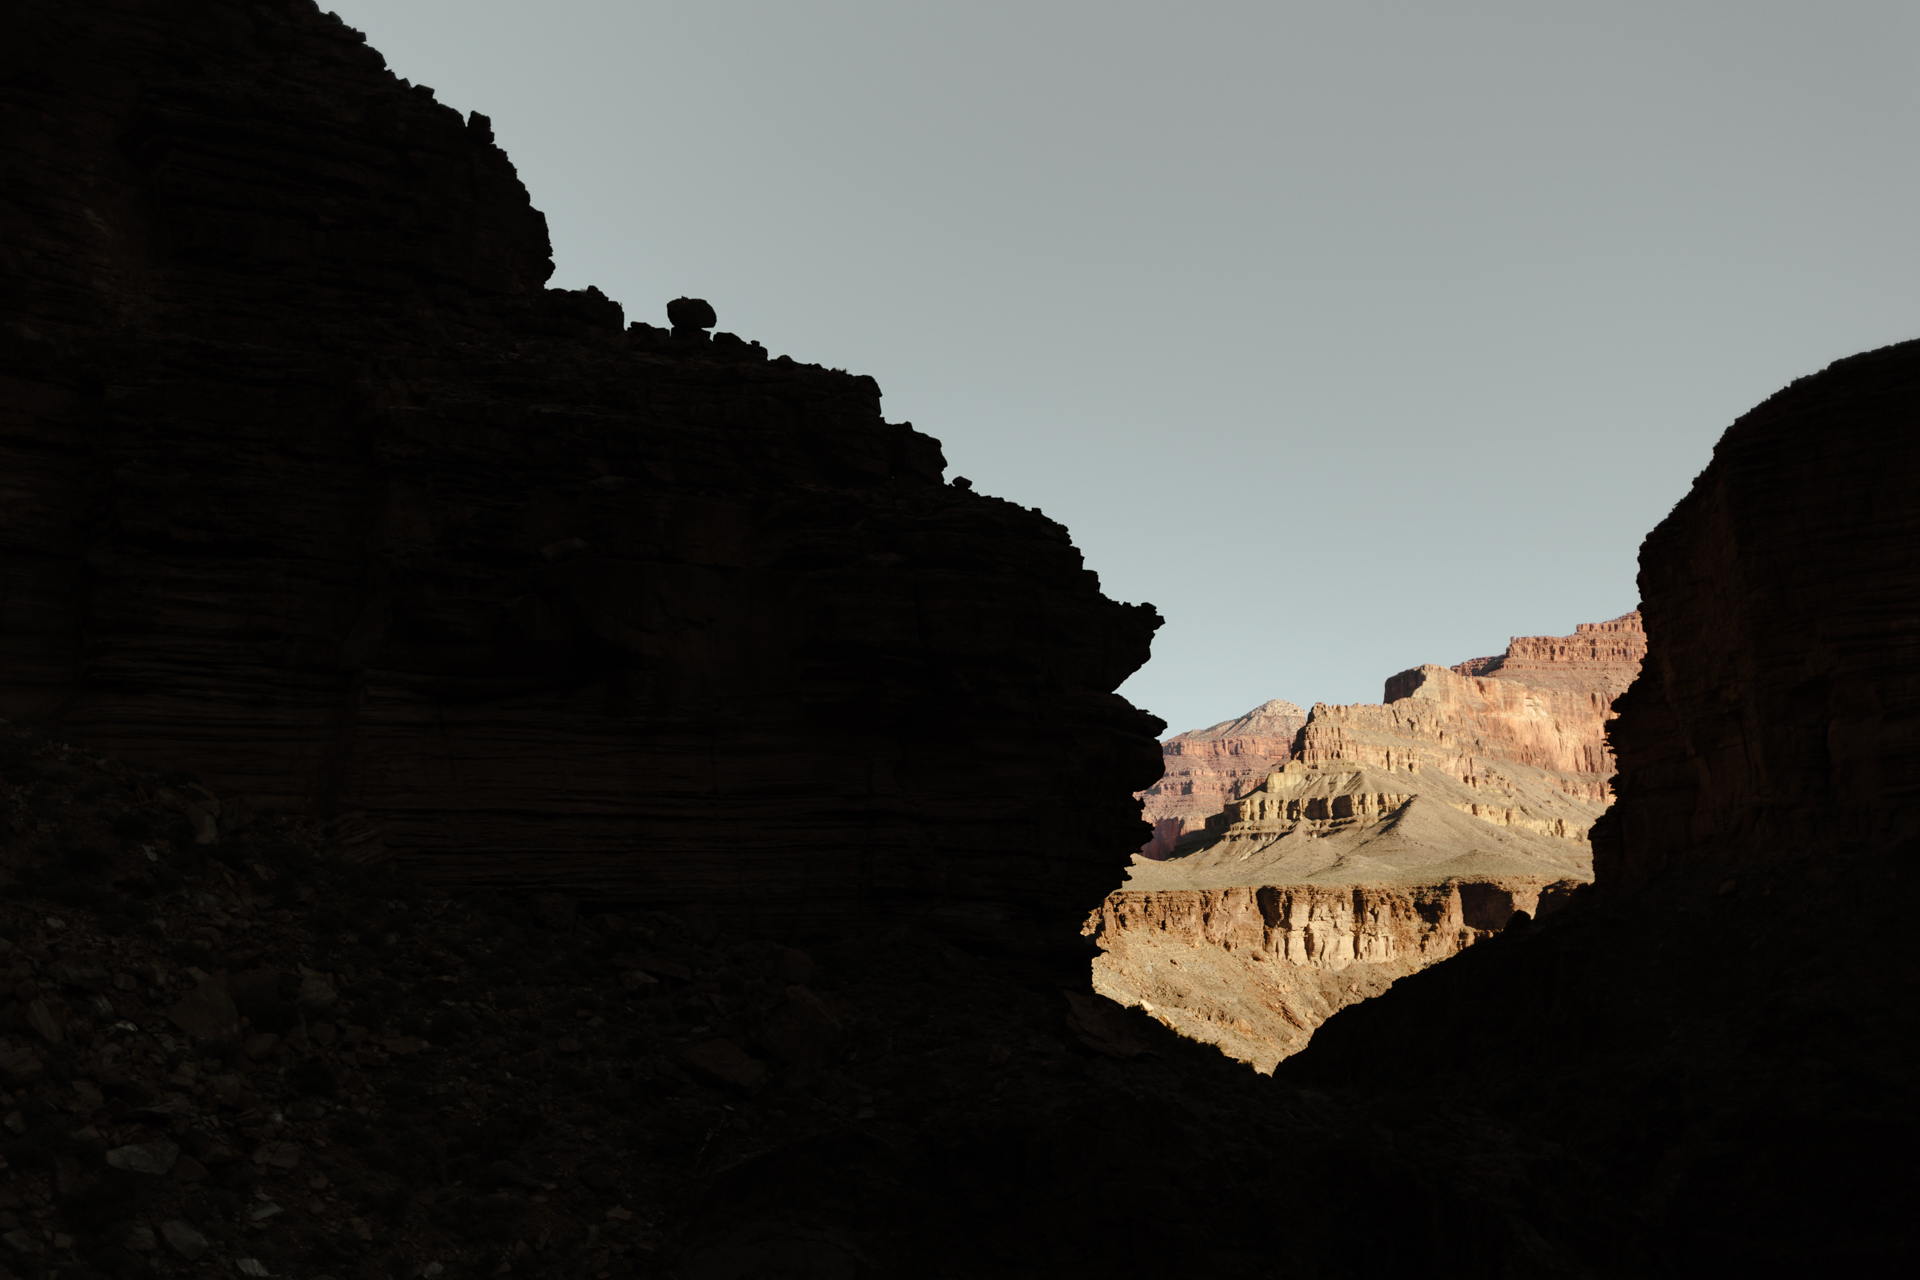 grand-canyon-winter-backpacking-14.jpg